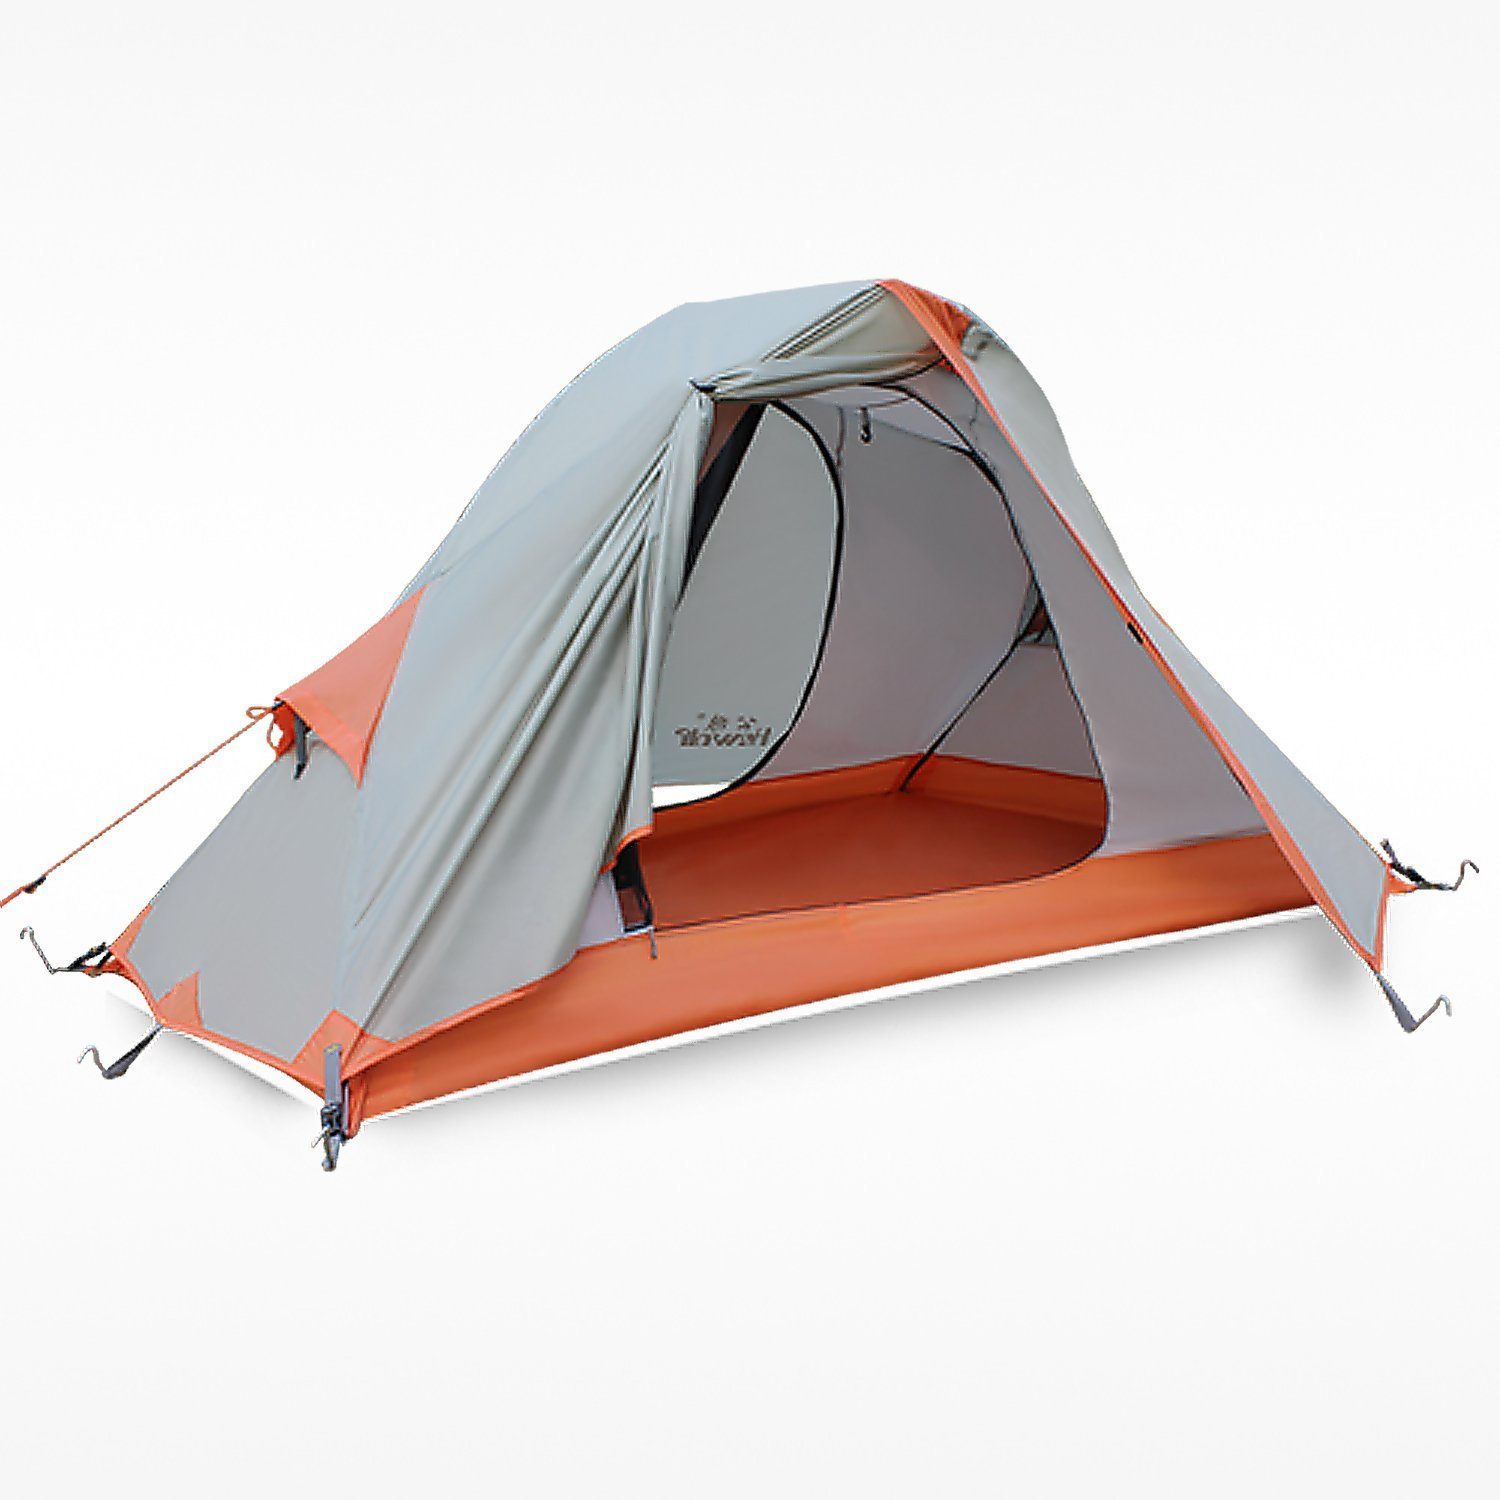 Amazon.com  Hewolf Outdoor 1 Man Tent for Trekking/Riding/Hiking/C&ing Waterproof  Sports u0026 Outdoors  sc 1 st  Amazon.com & Amazon.com : Hewolf Outdoor 1 Man Tent for Trekking/Riding/Hiking ...